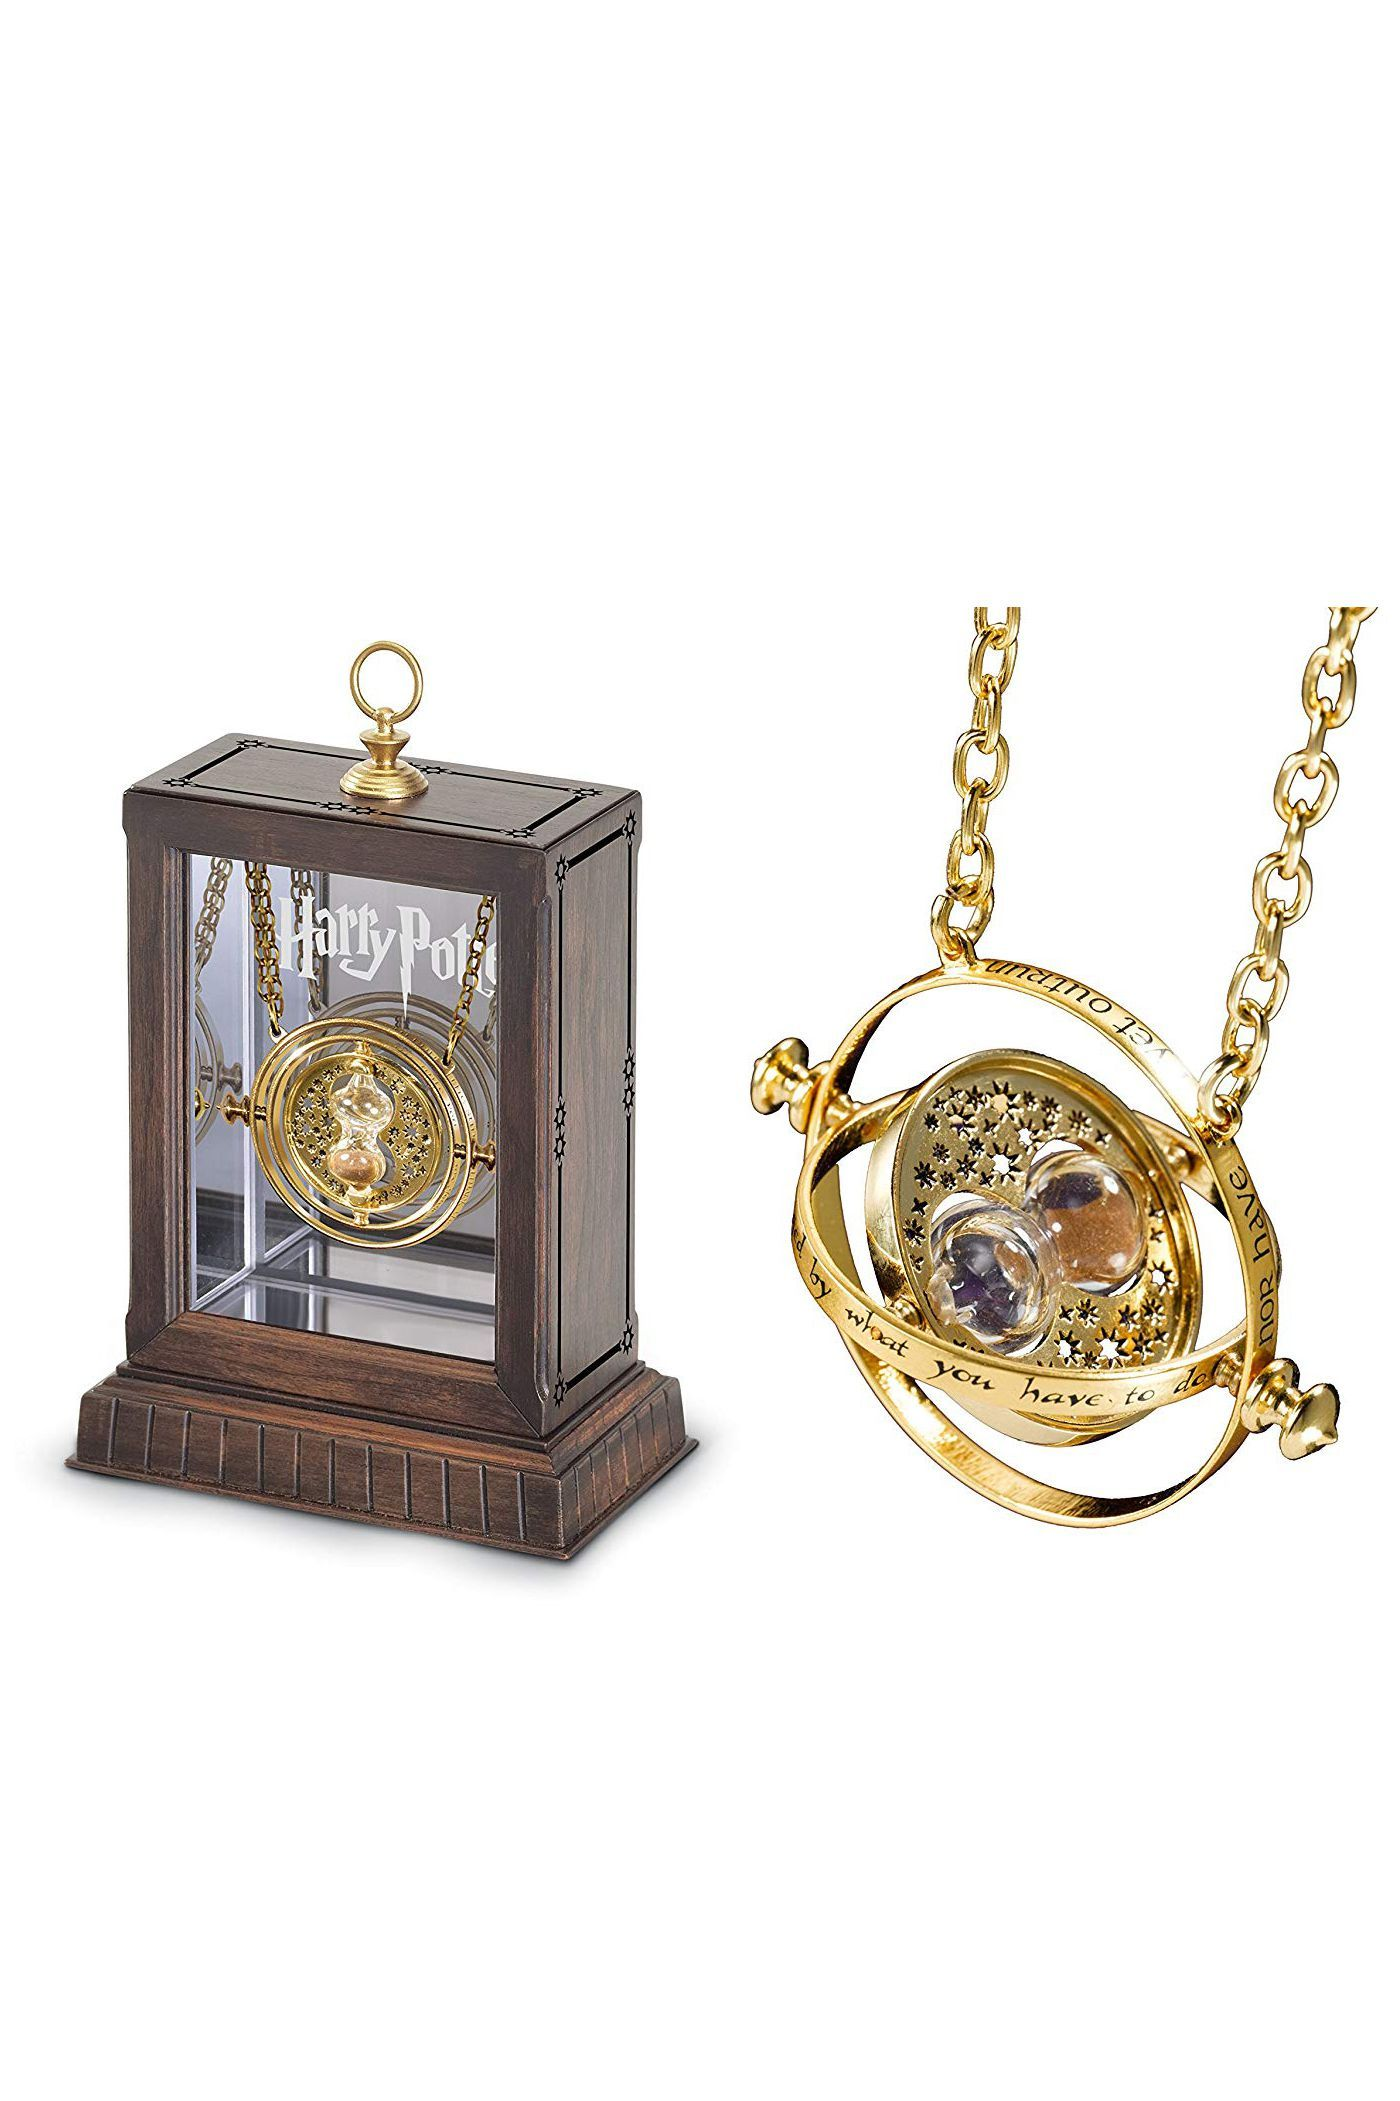 Harry Potter Christmas Gifts.Hermione S Time Turner Necklace